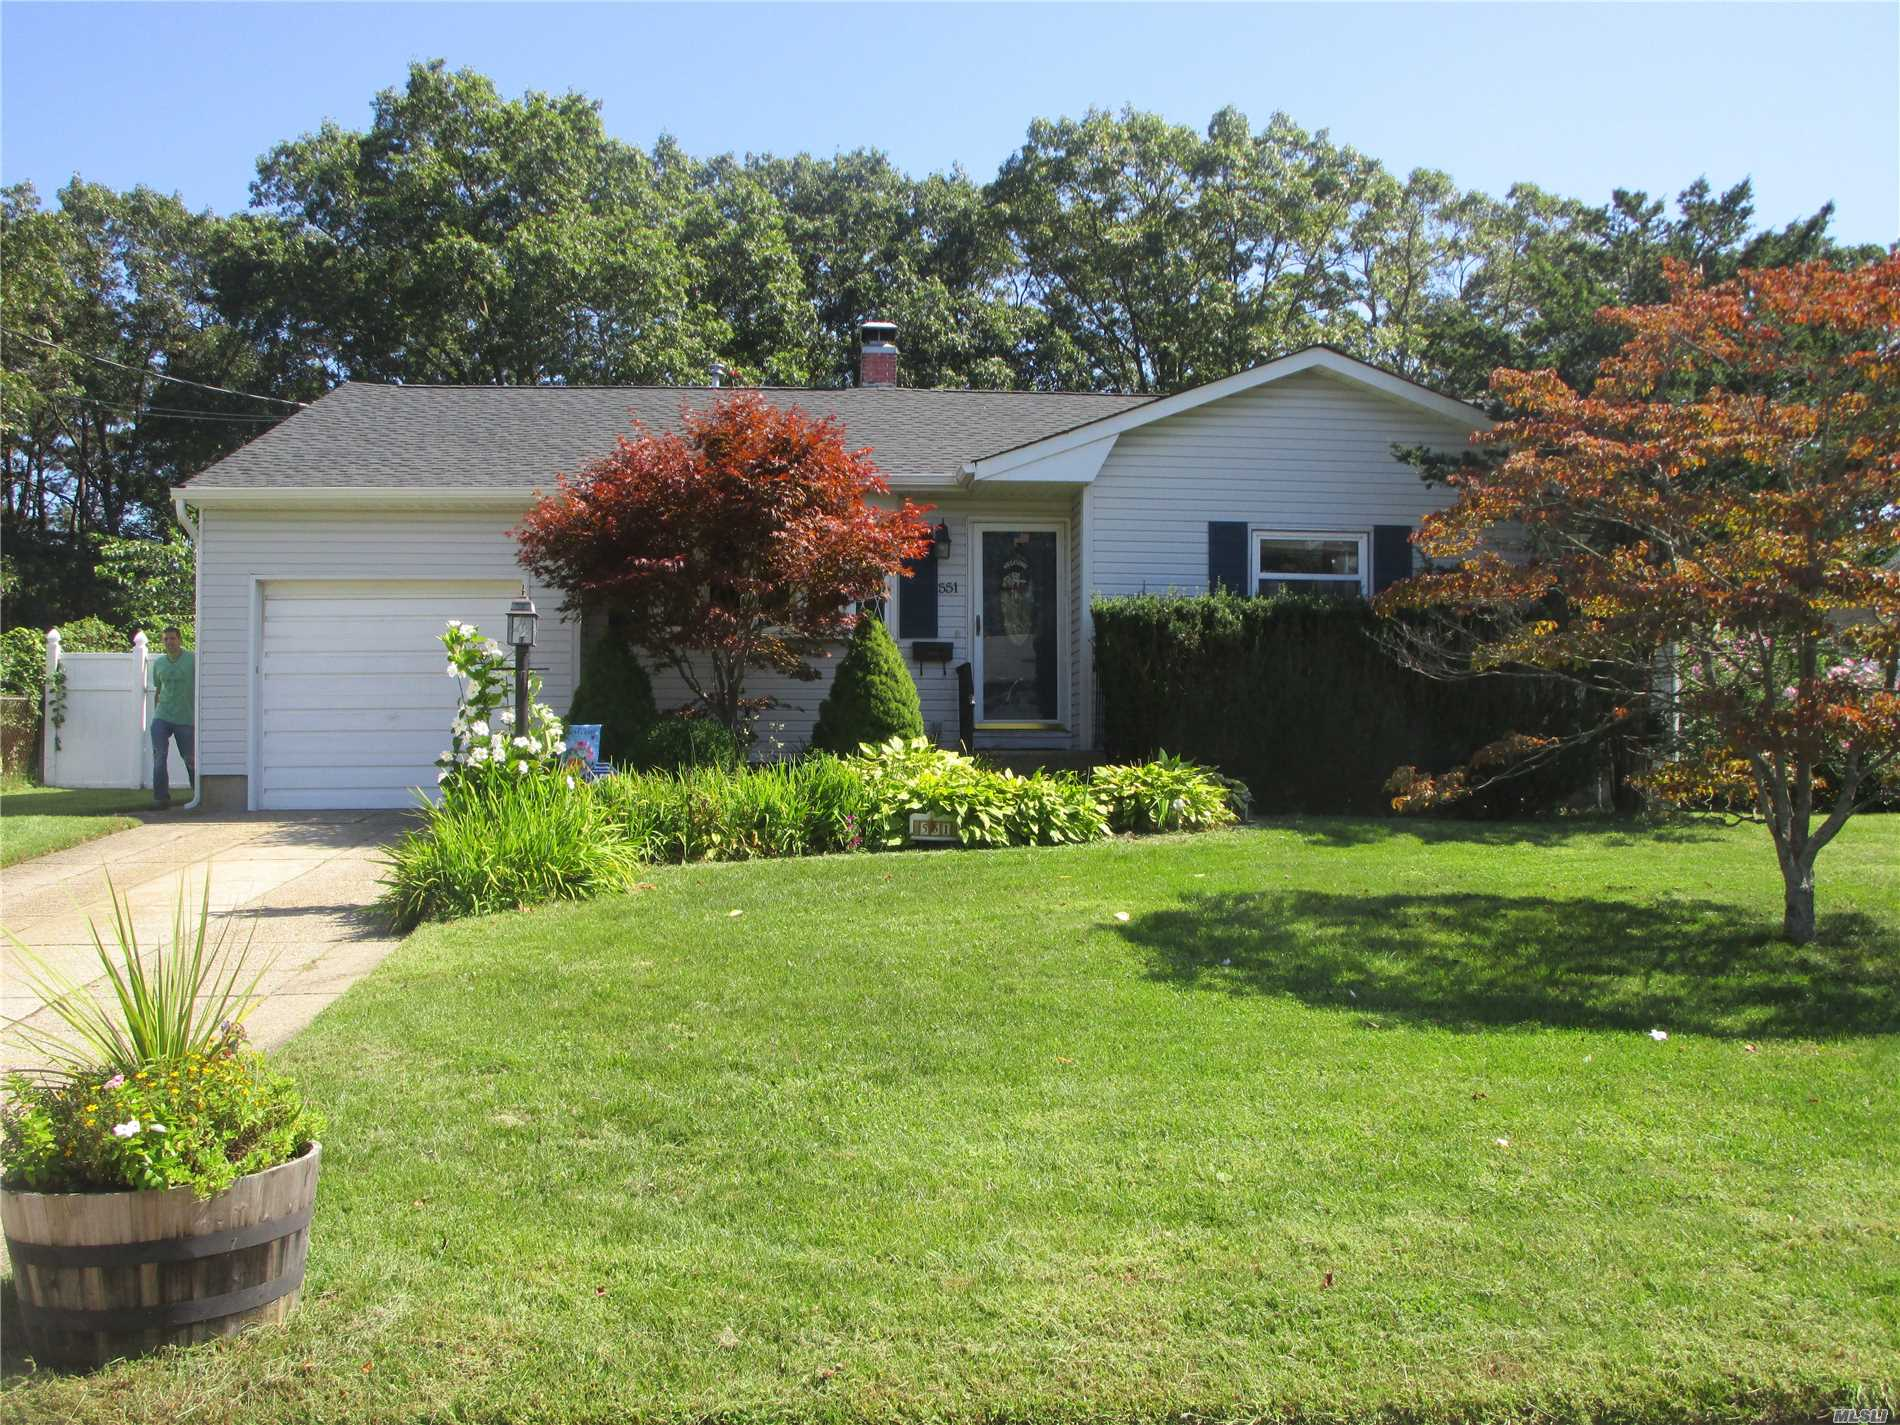 Photo of home for sale at 551 Renee Dr, Bayport NY